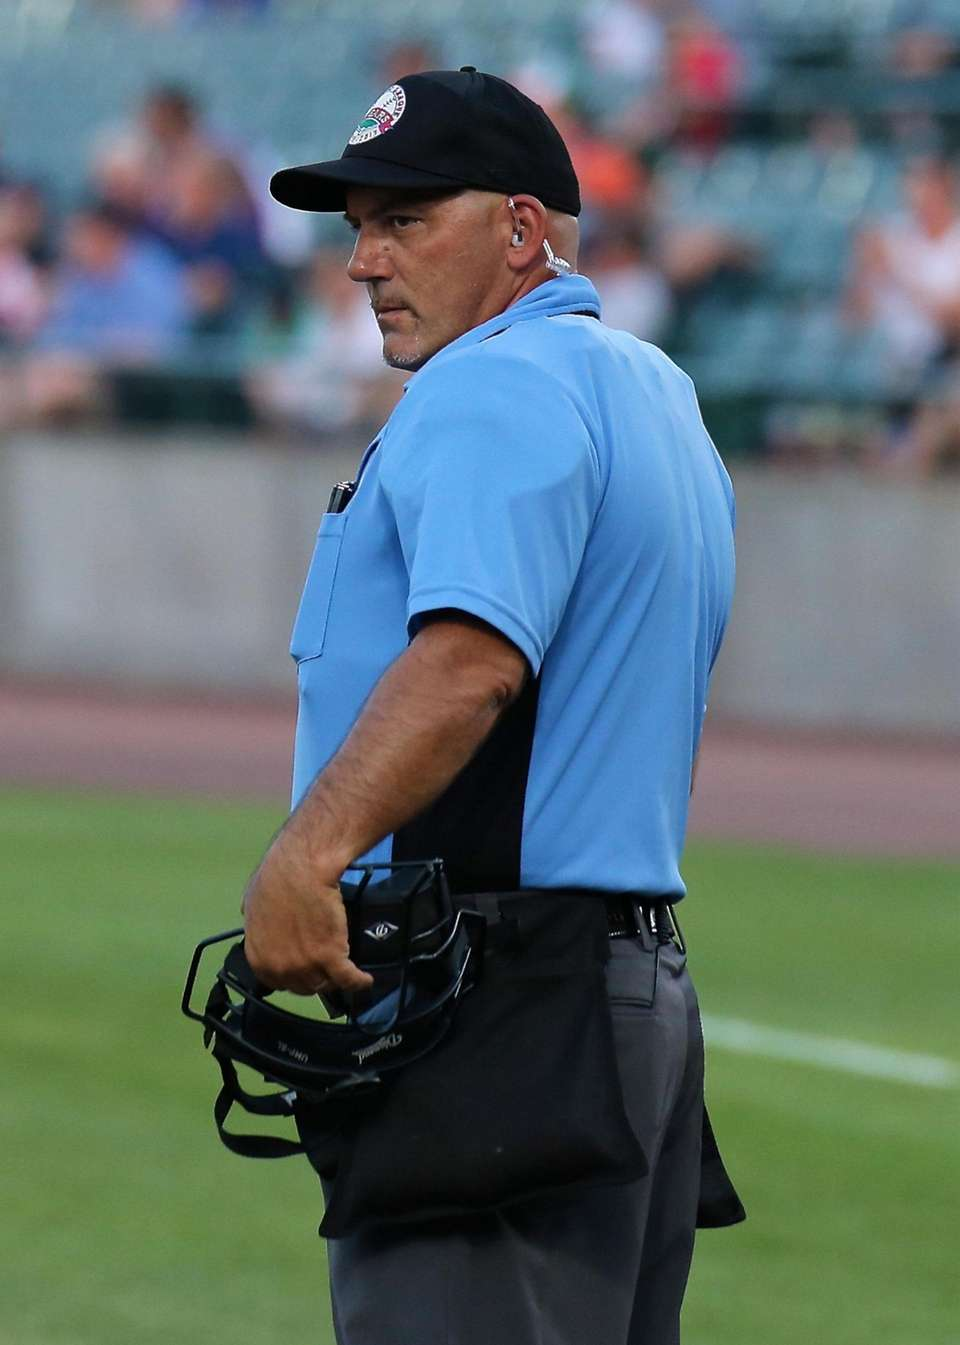 Home plate Umpire Frank Iurilli wears the new